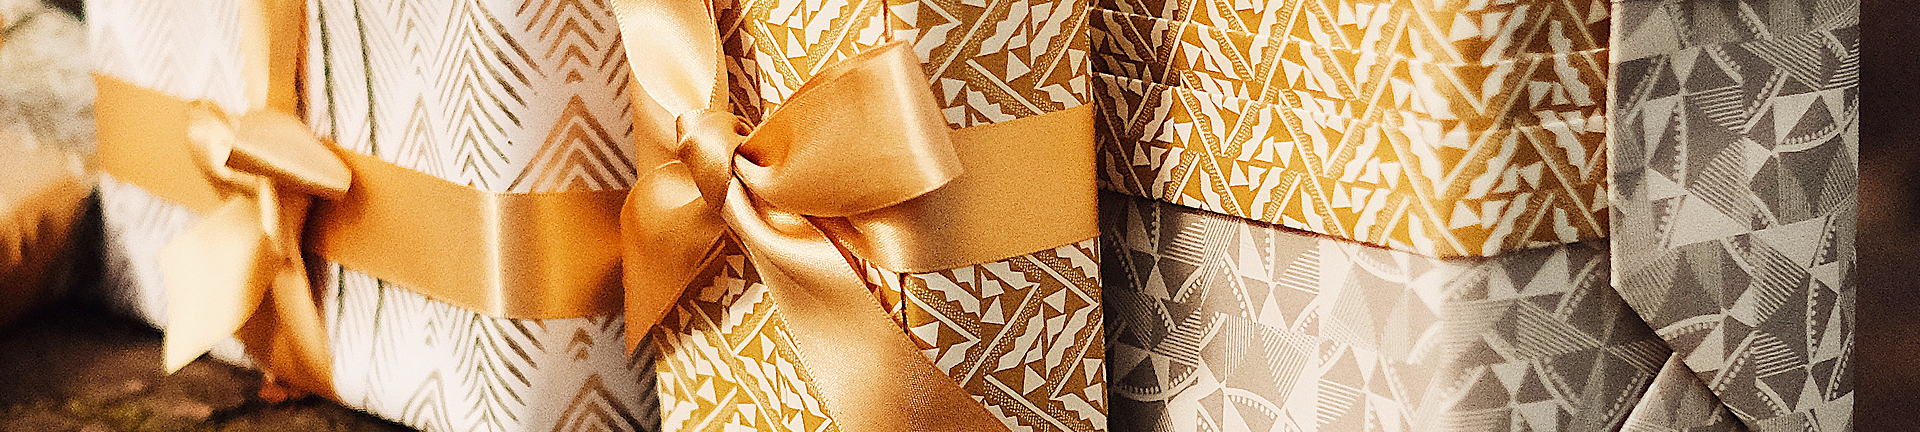 Gold and white gifts professionally wrapped in bow and eco-friendly paper